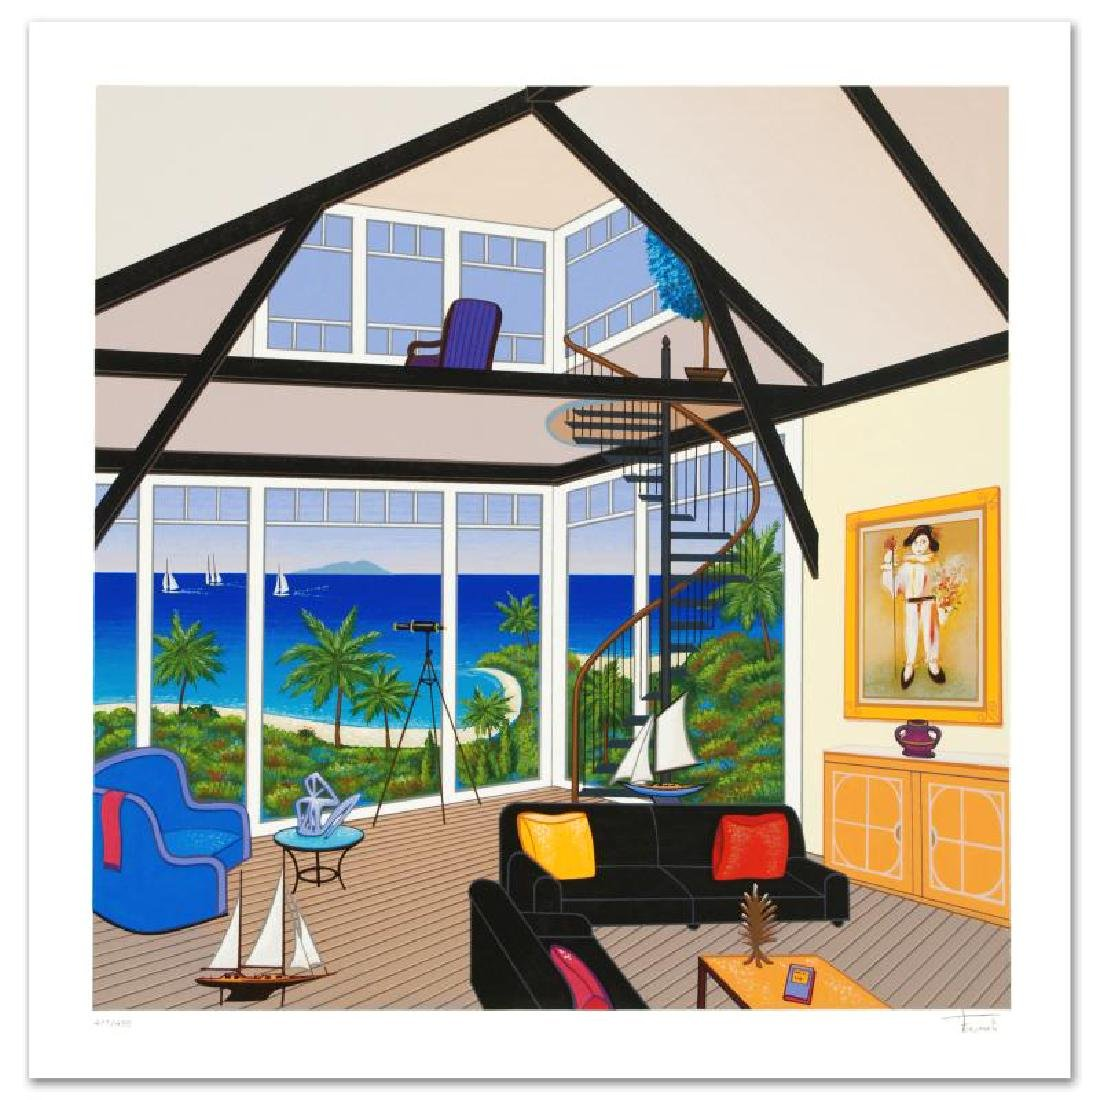 Duplex Over Stinson Limited Edition Serigraph by Fanch - 2